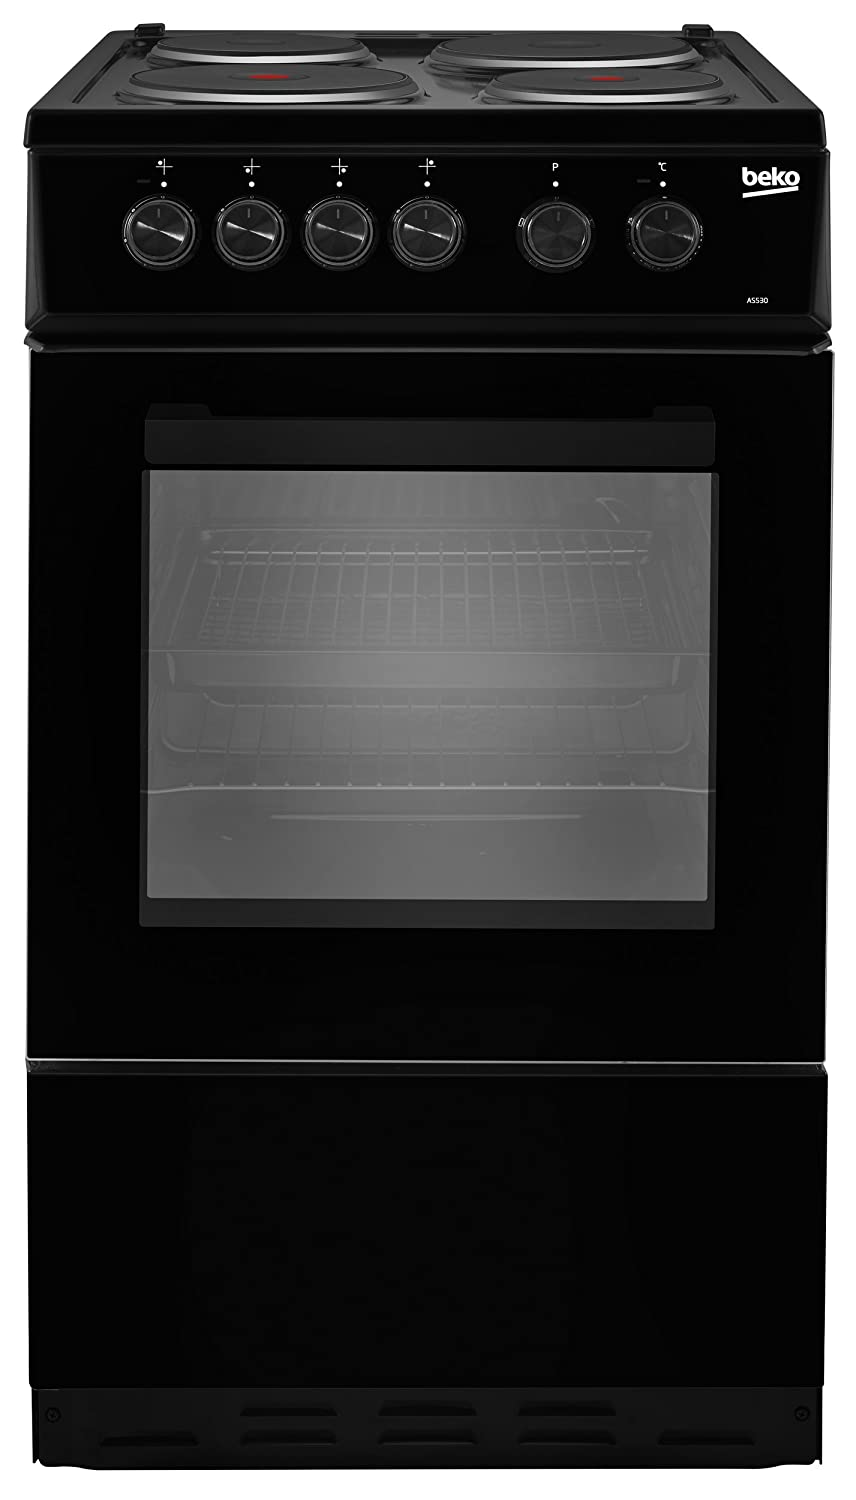 Beko AS530K Freestanding A Rated Electric Cooker - Black AO